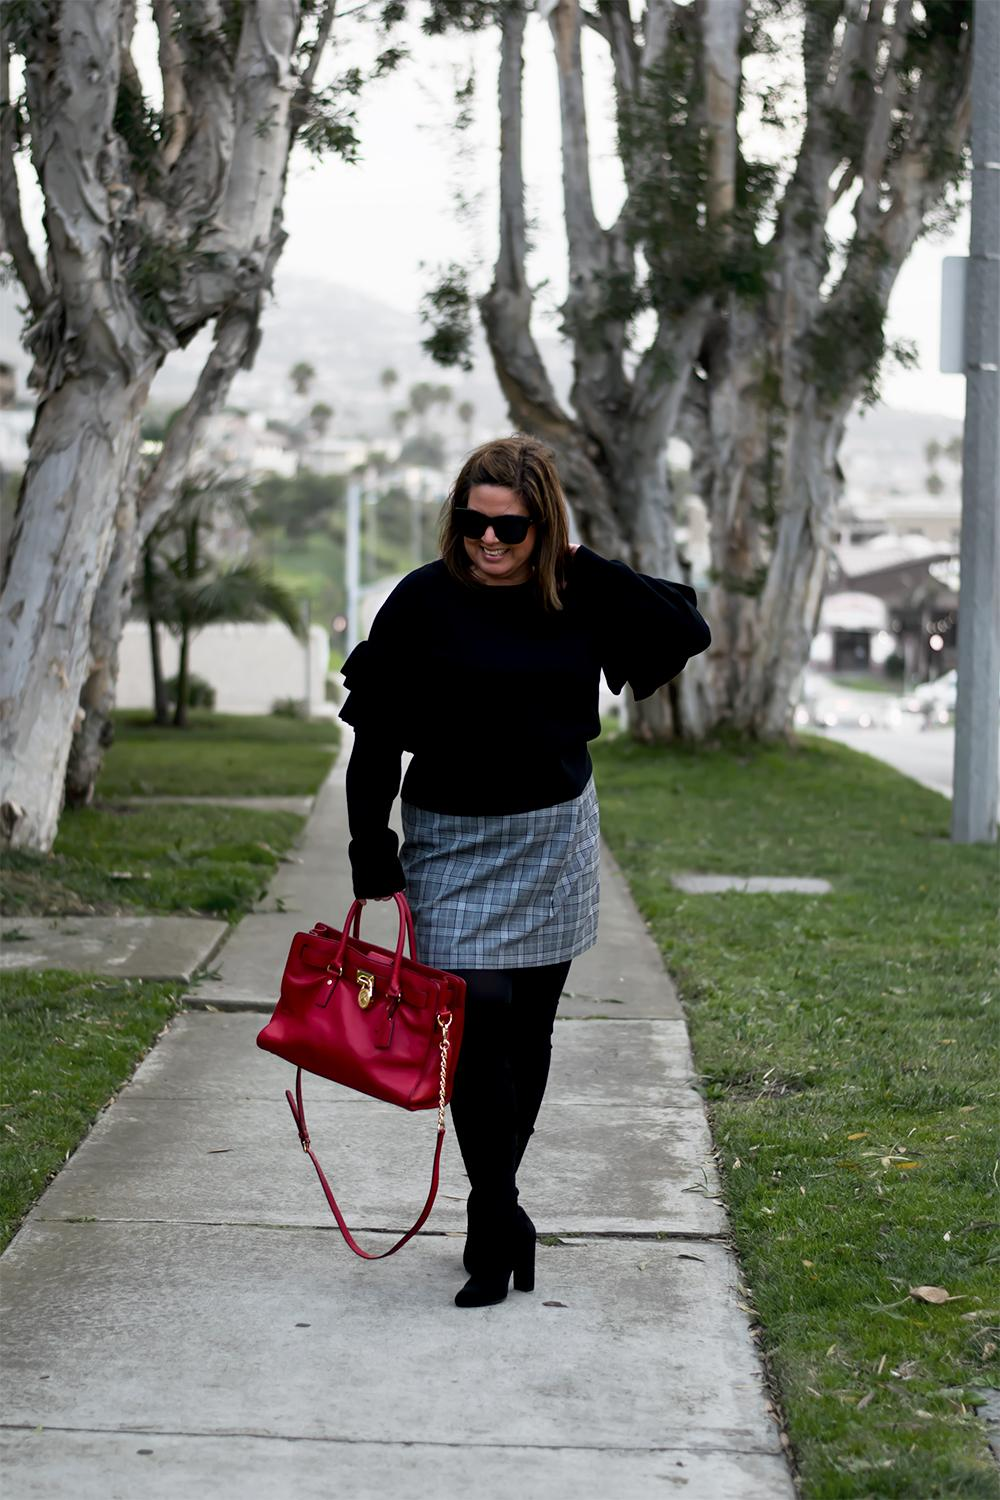 Minimalist-Black-and-White-Weekend-Outfit-The-Biggest-Trends-for-2017-Barefoot-in-LA-Fashion-Blog-Style-Ideas-0875